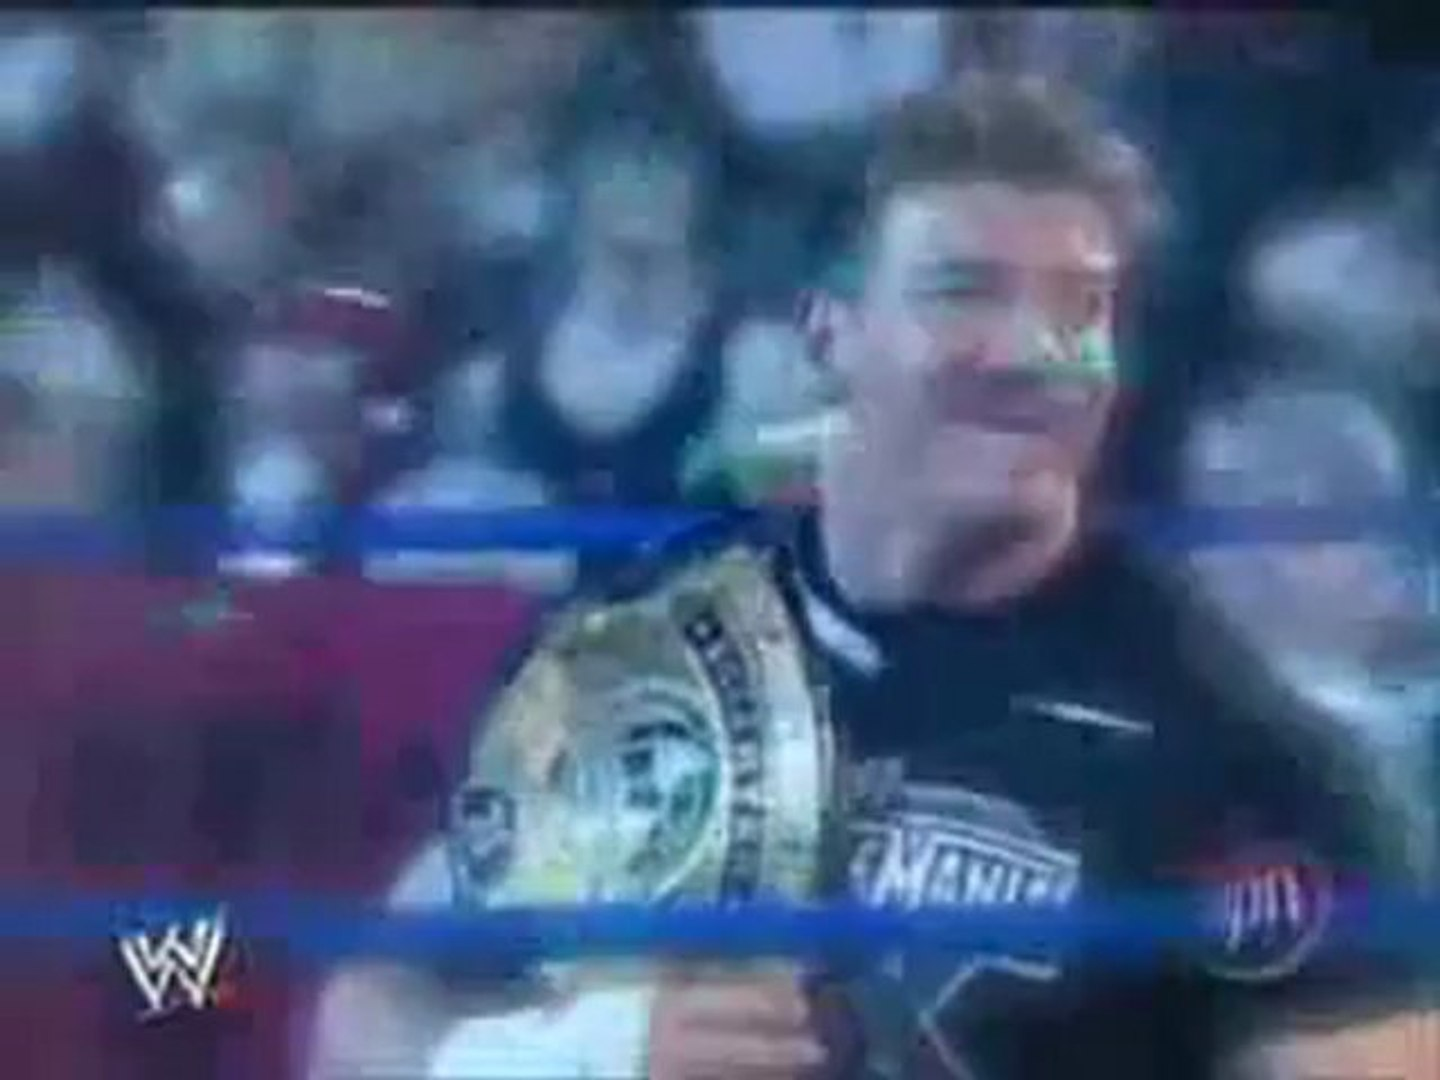 Eddie Guerrero Official Tribute from WWE Raw 14-11-2005 and WWE Smackdown 18-11-2005